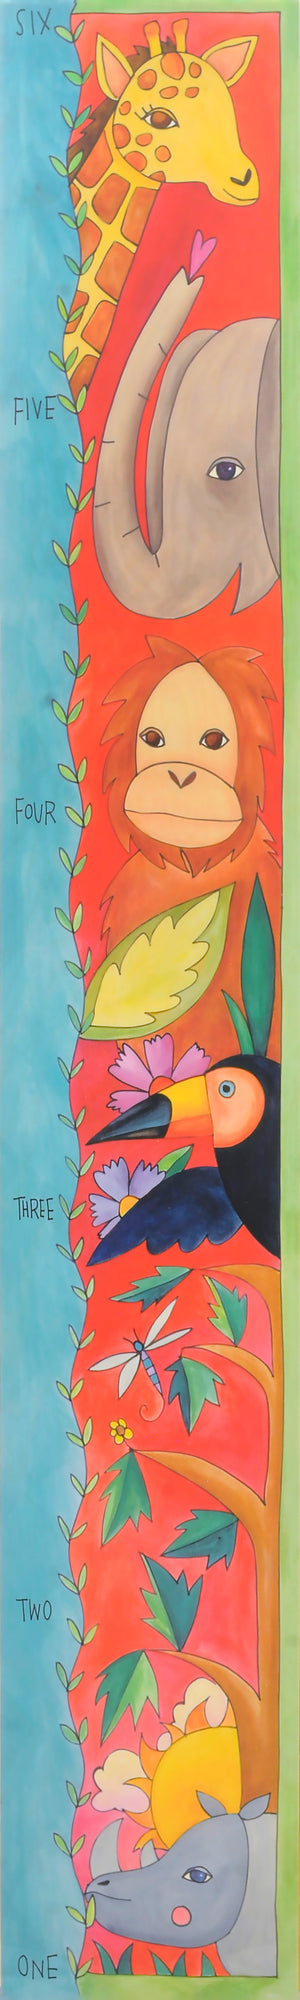 """Animal Friends"" Growth Chart – Safari animal motif fills this growth chart front view"